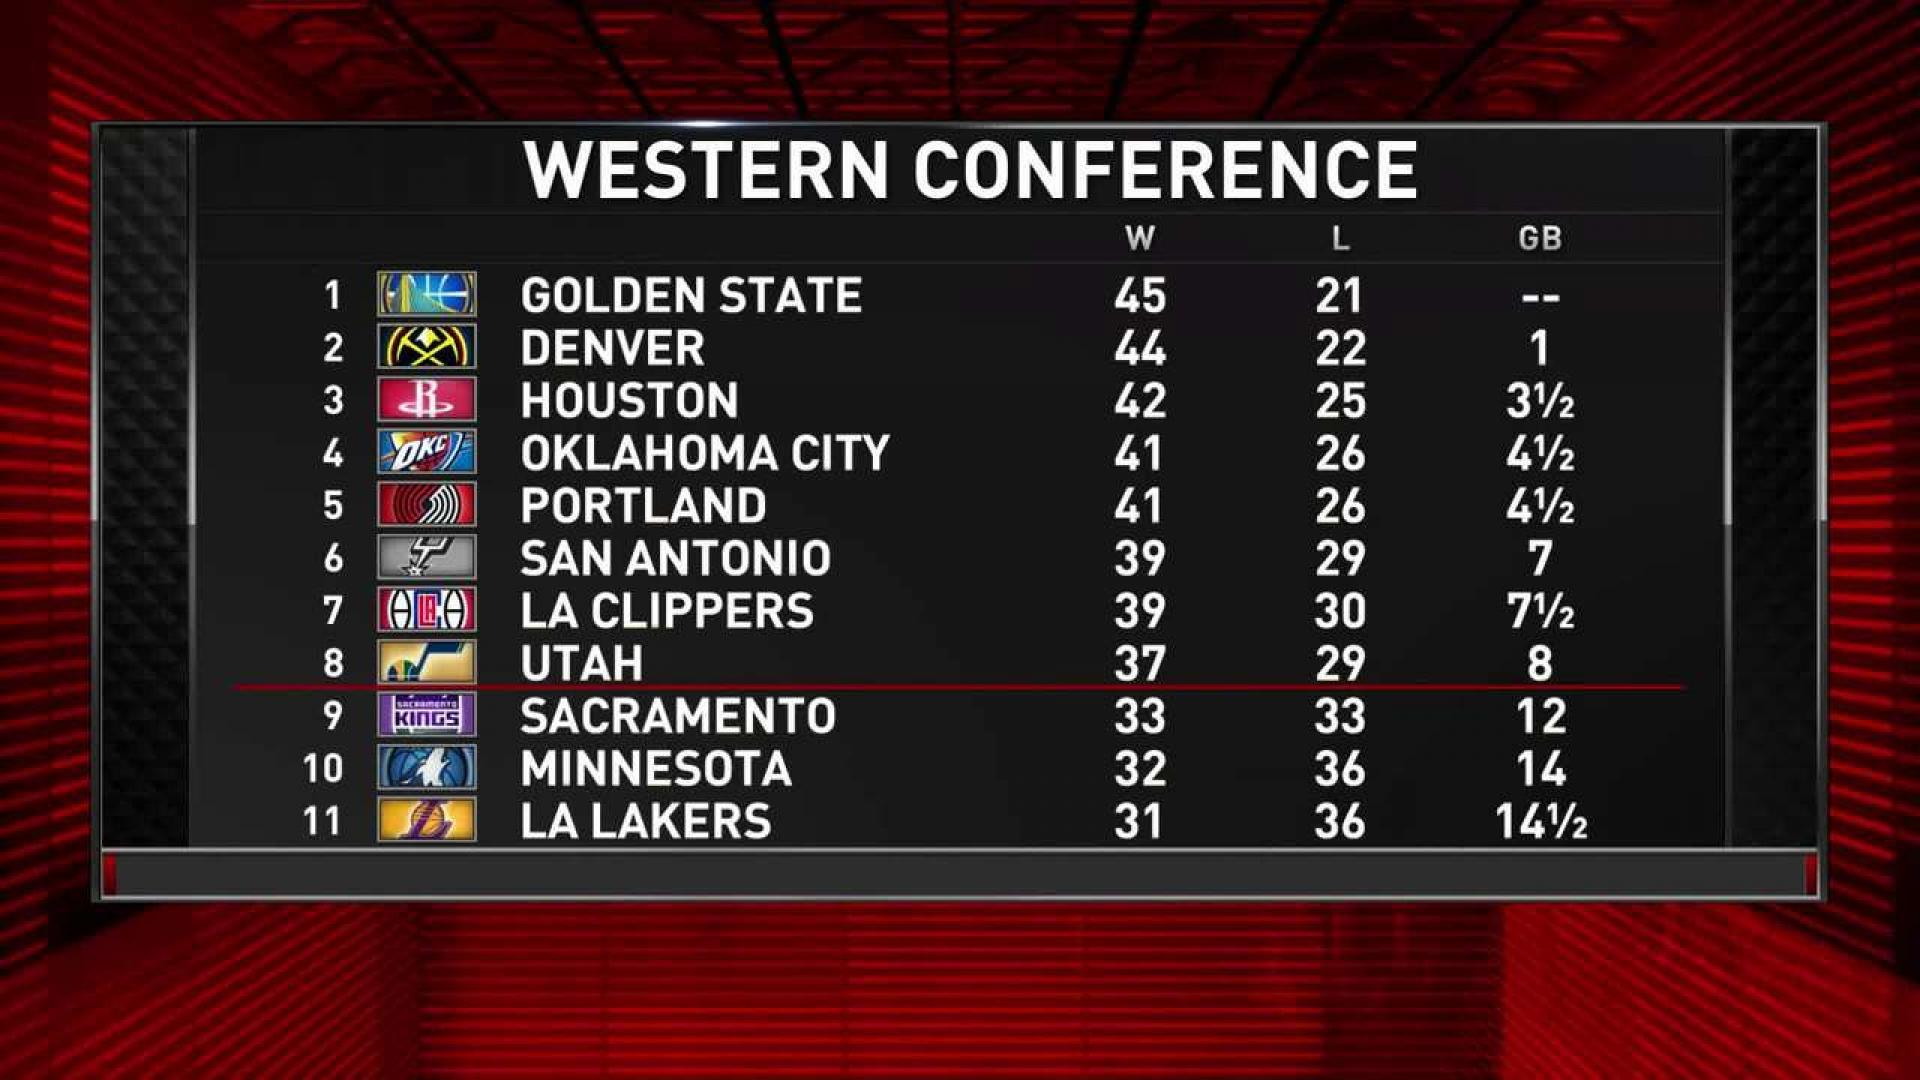 Western Conference teams vying for playoff seeding | NBA com